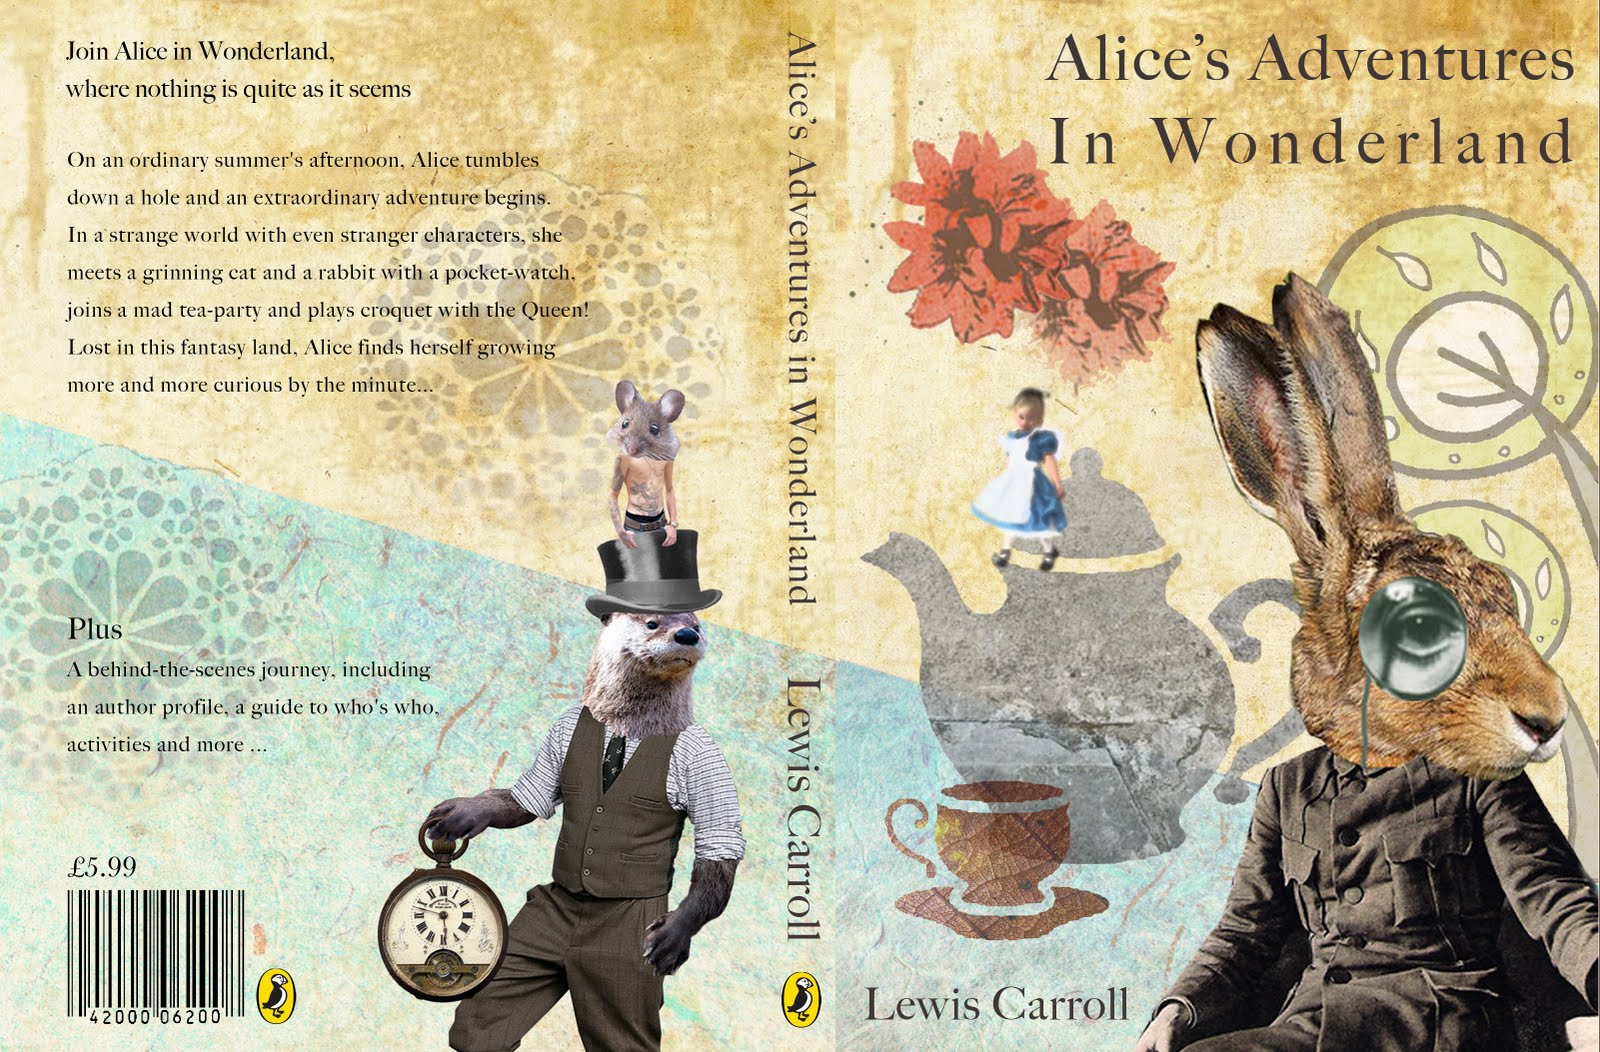 Alice In Wonderland Book Cover Ideas ~ Holly box: penguin&puffin book covers